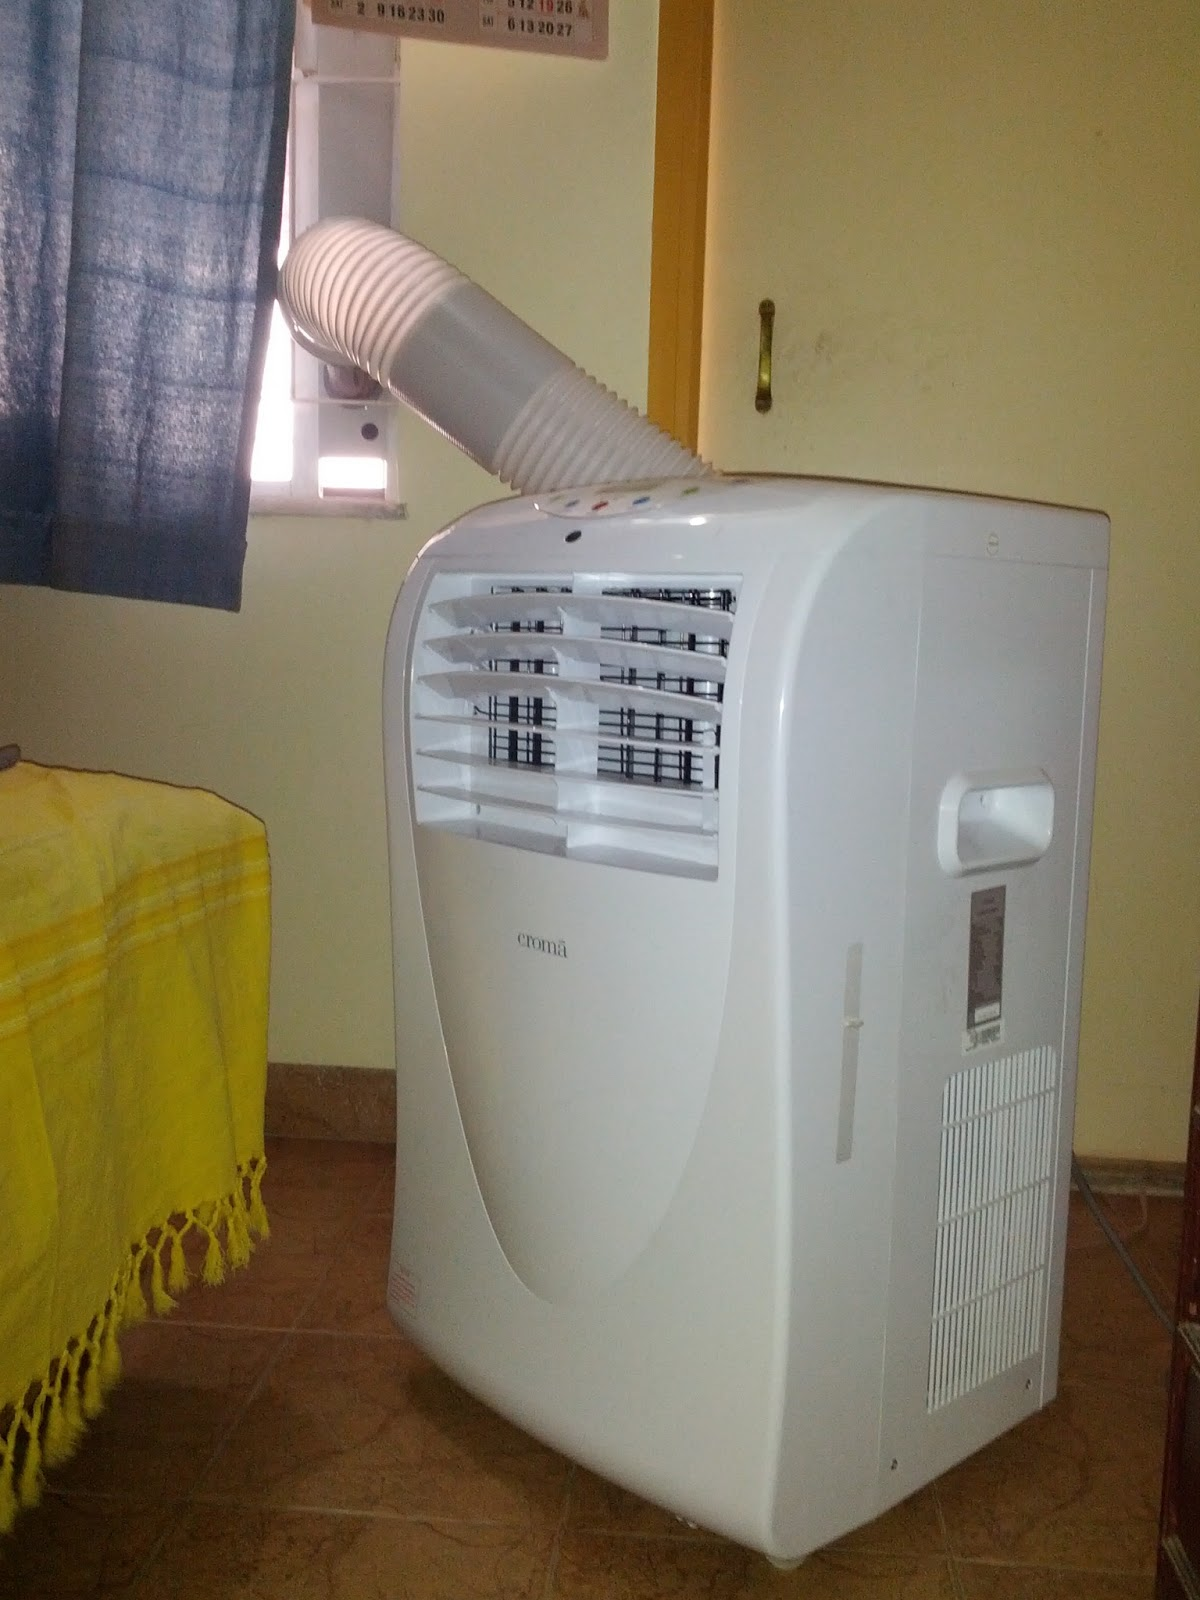 The Geek Afterglow: Croma Portable AirCon a good solution for AC  #61421F